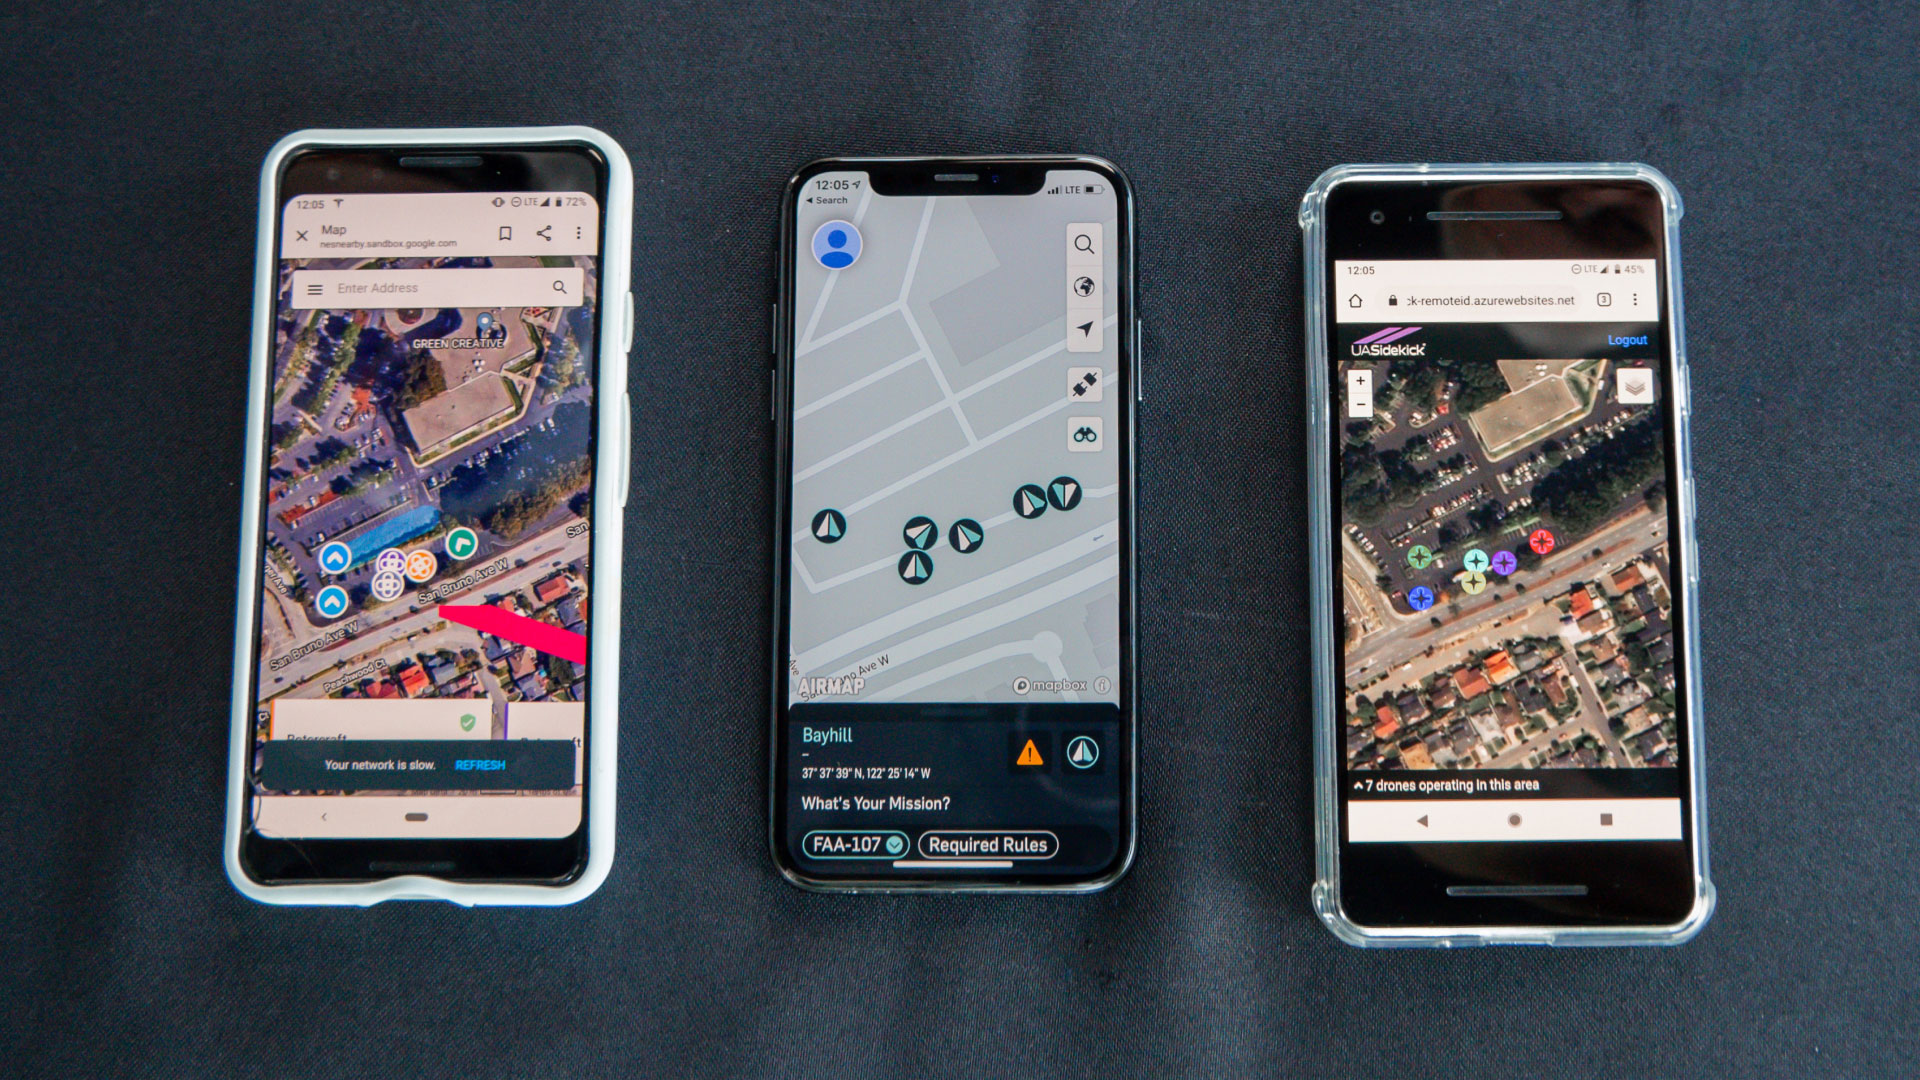 Wing (left), AirMap (center), and UASidekick (right) remote ID applications visualize 6 unique drone operations across multiple USS. Image courtesy of Wing.